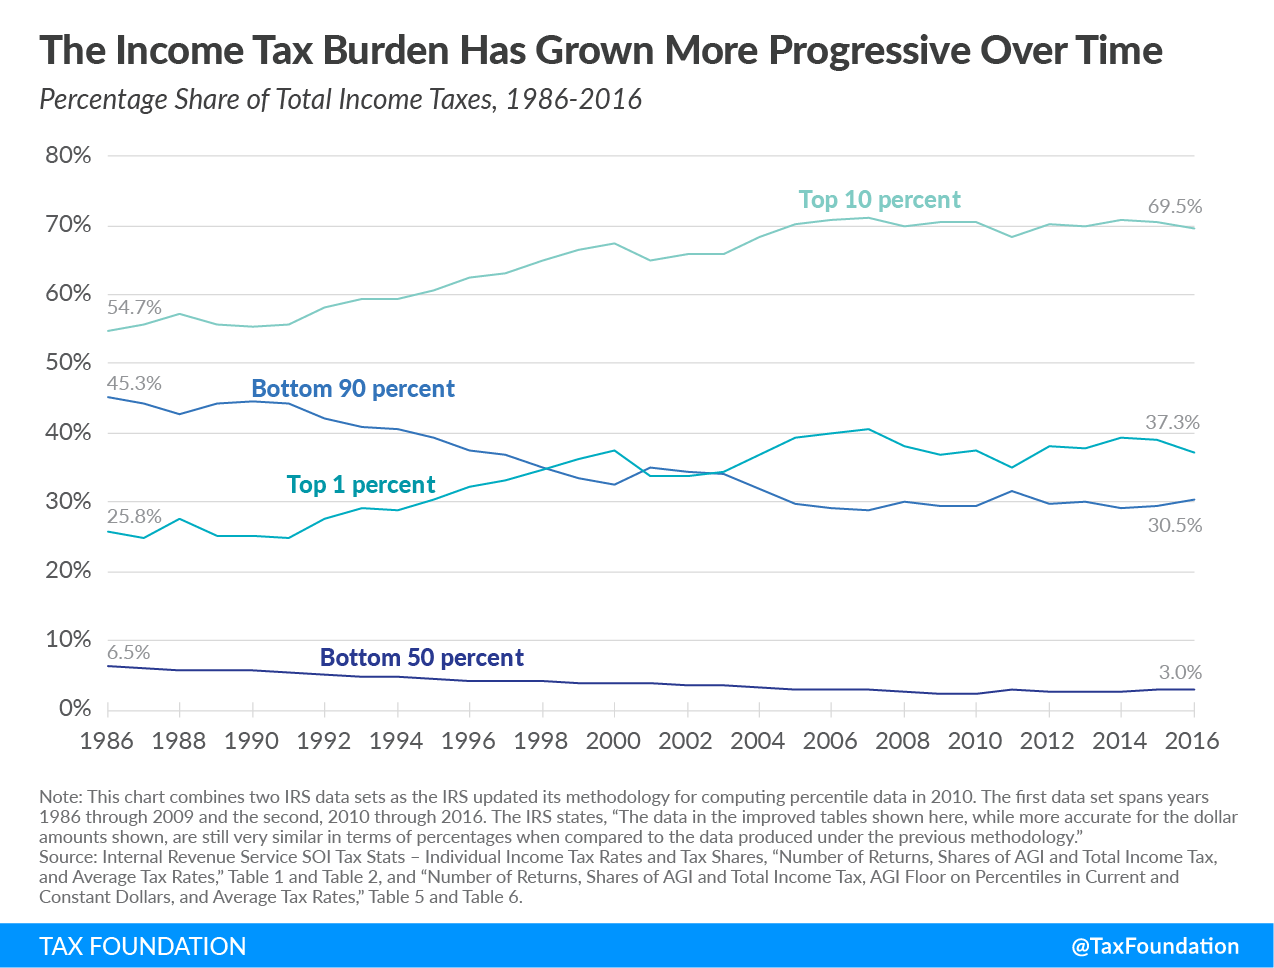 Income tax burden has grown more progressive over time